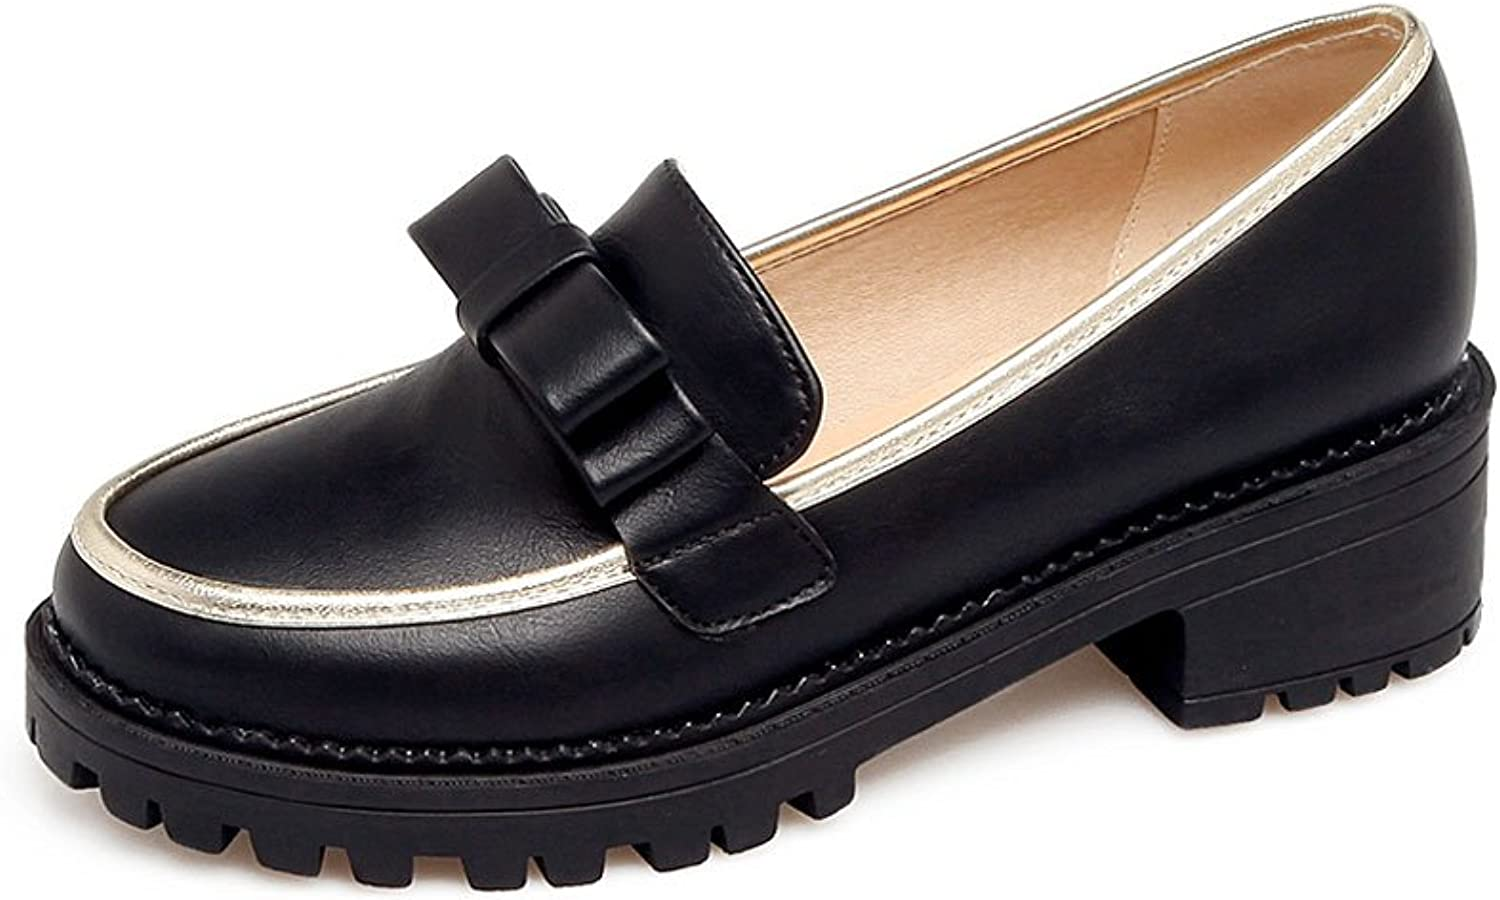 DoraTasia Simple British Campus Bow-Knot Slip on Bling Edge Platform Oxford Loafers shoes